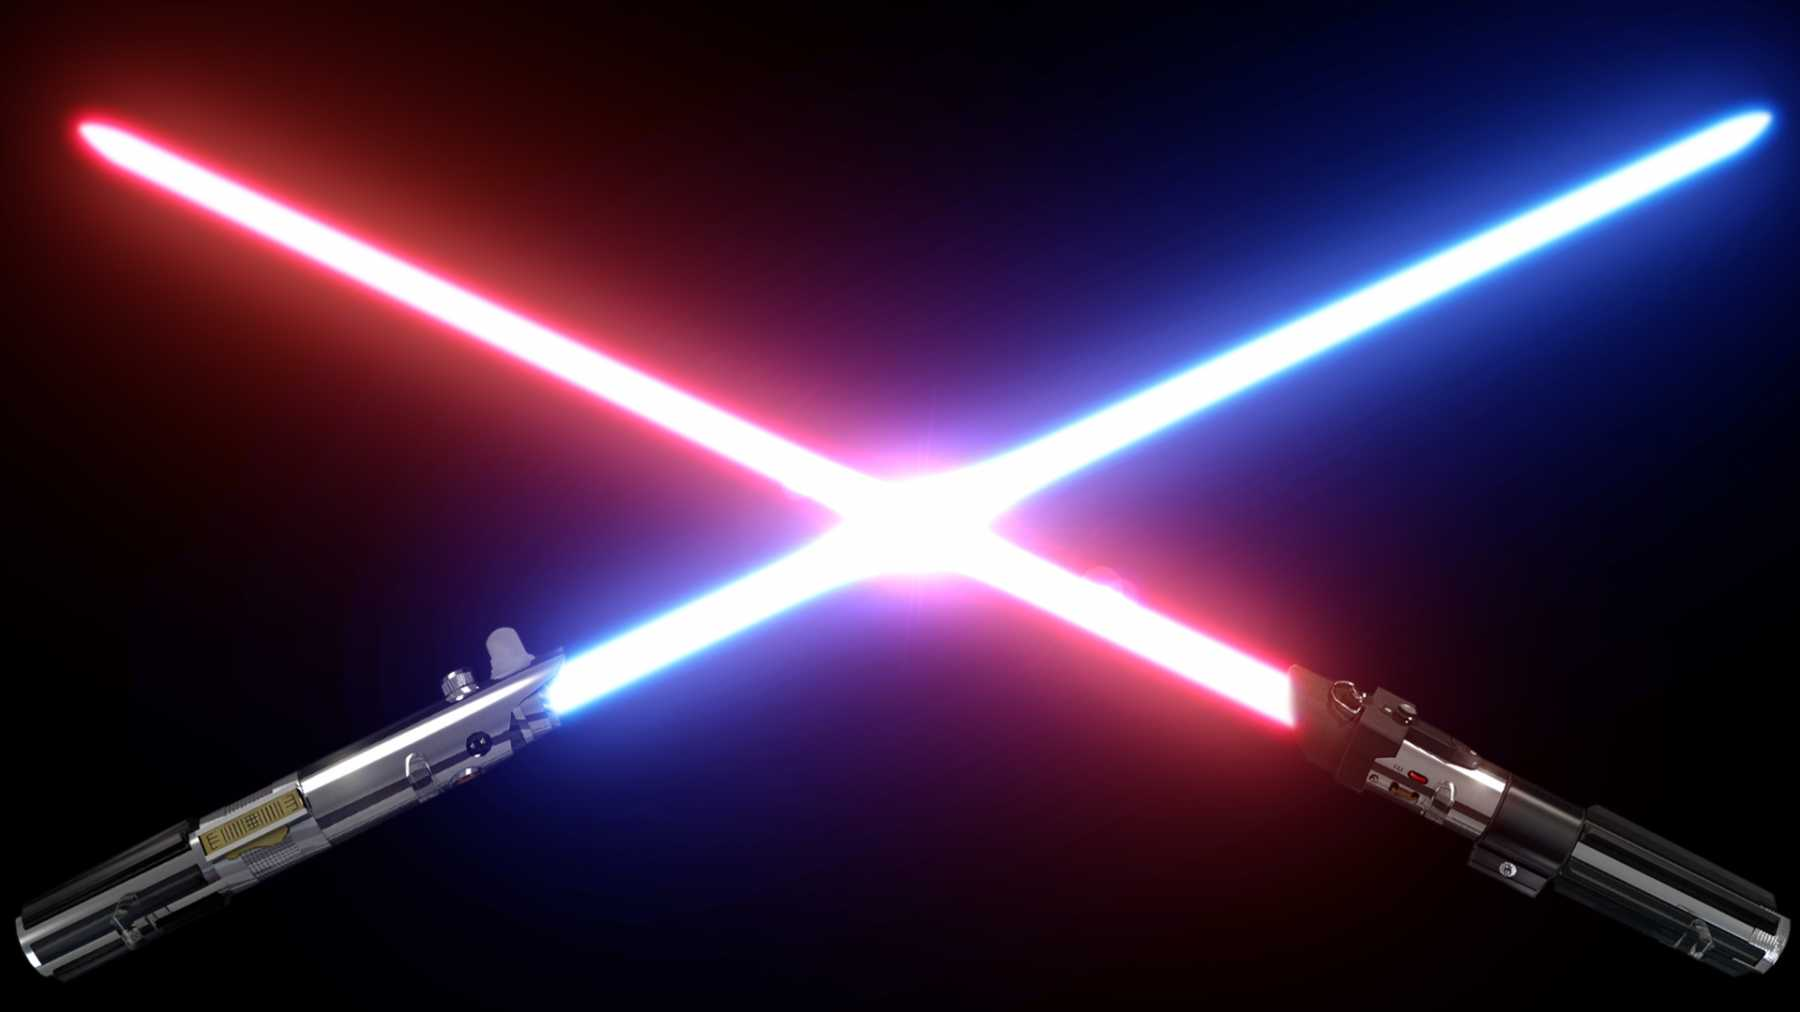 May The Force Be With Us: Star Wars Lightsabers Finally Invented